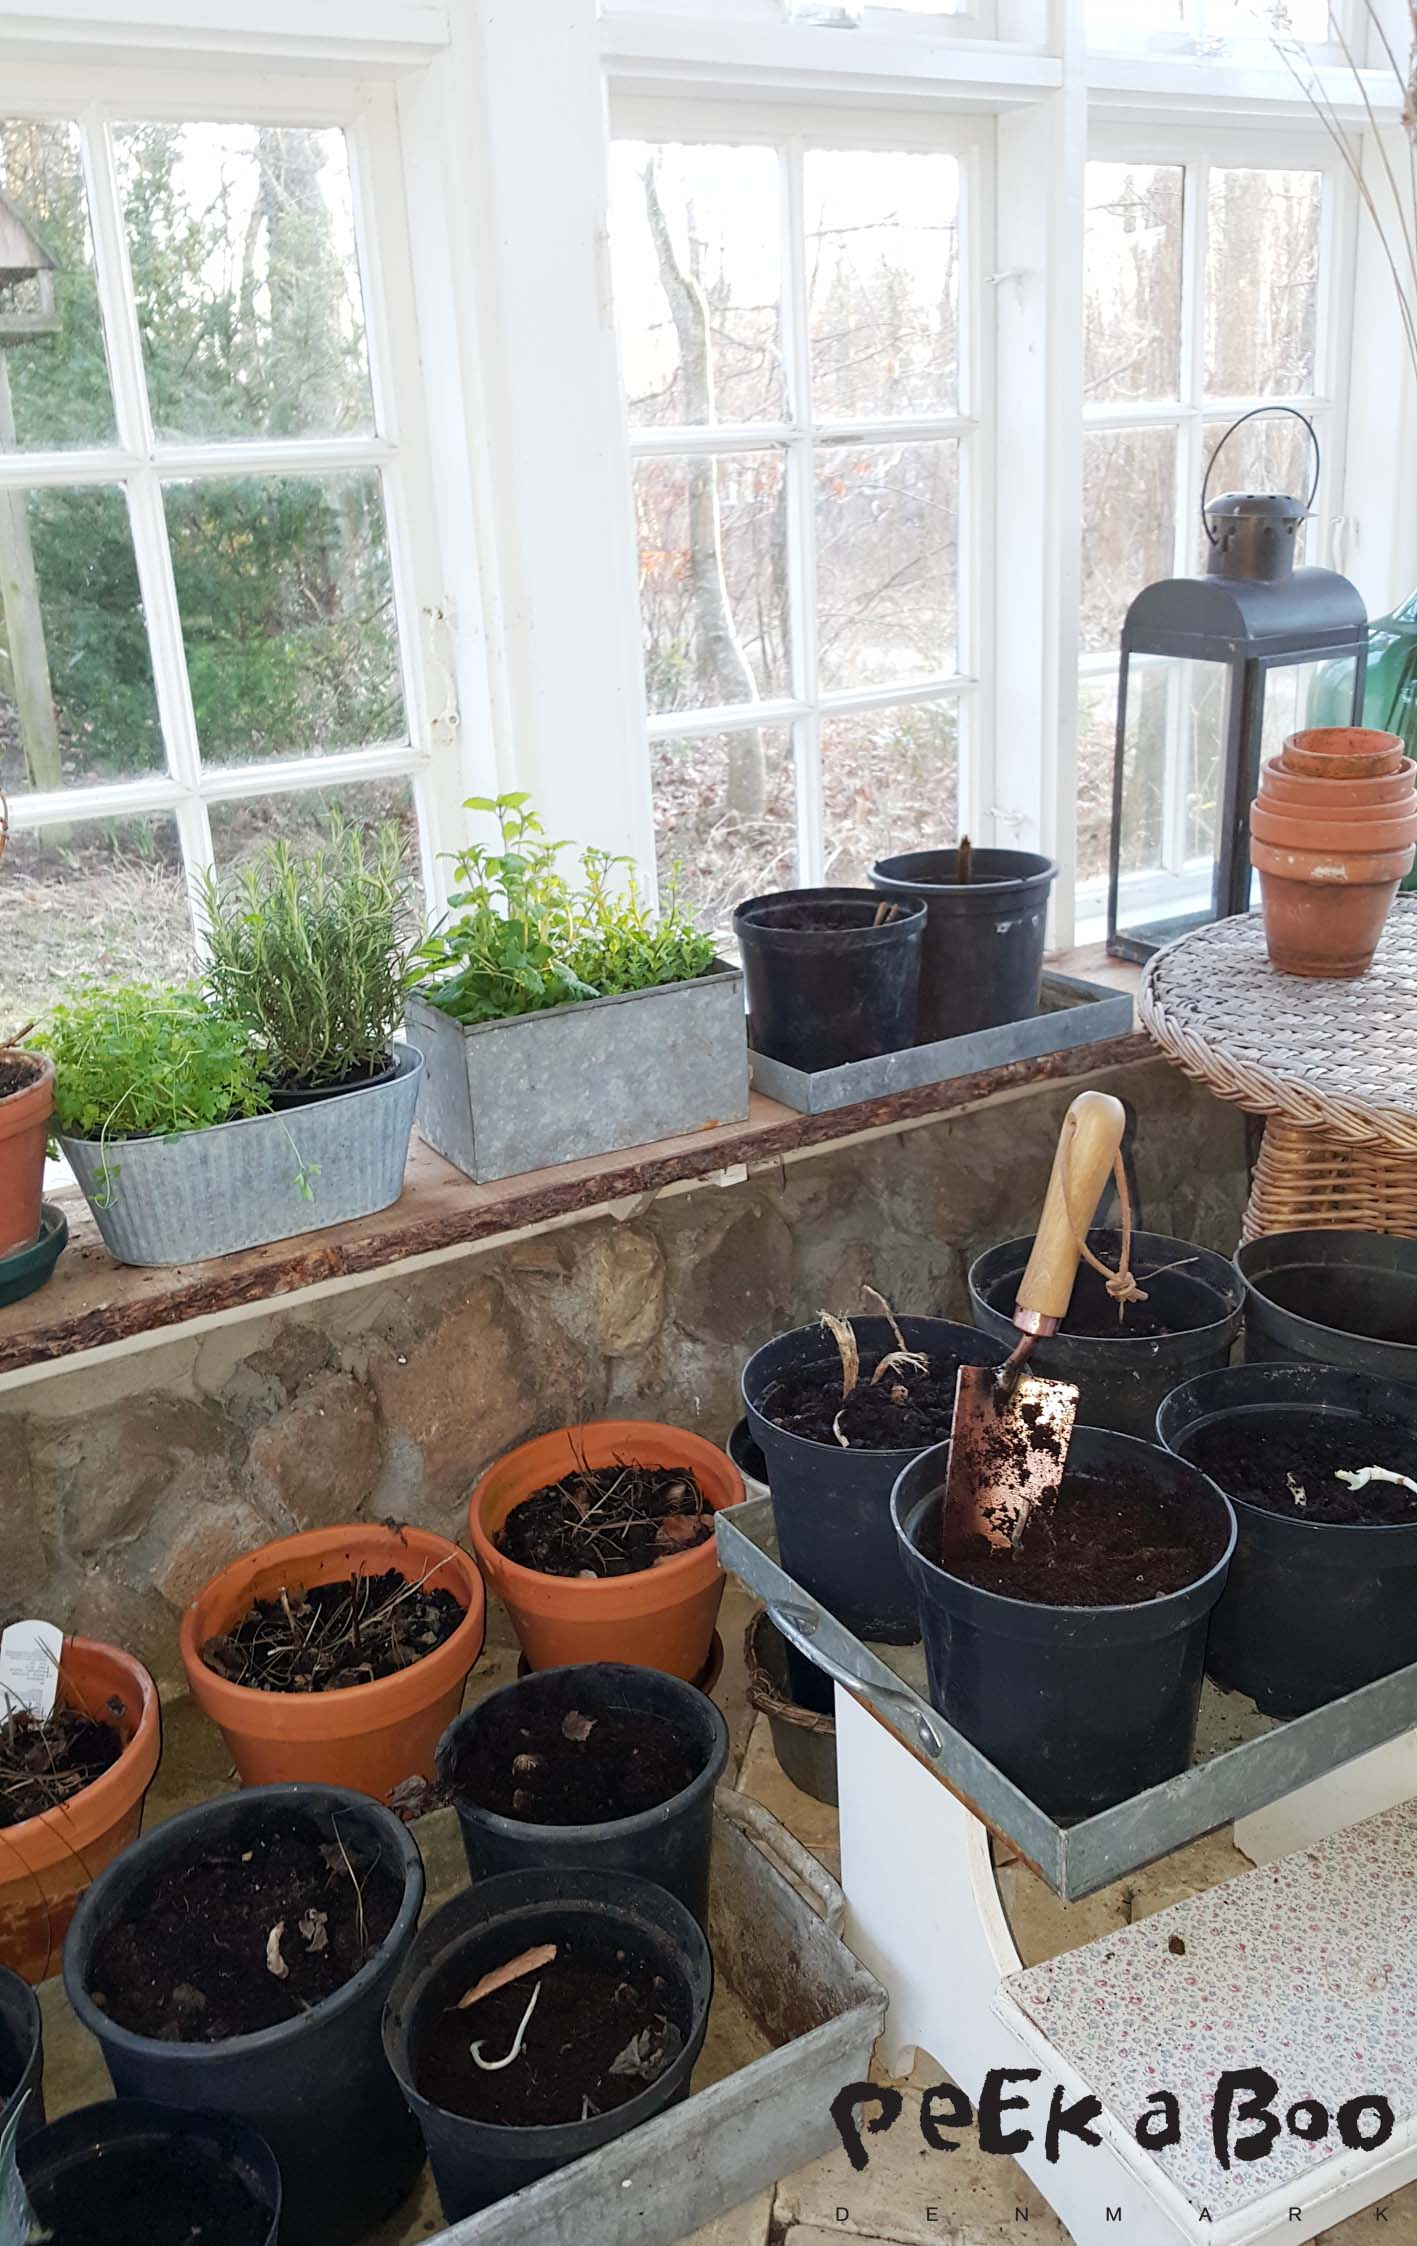 The greenhouse is now filled with pots. And my patience now has to come to a test...